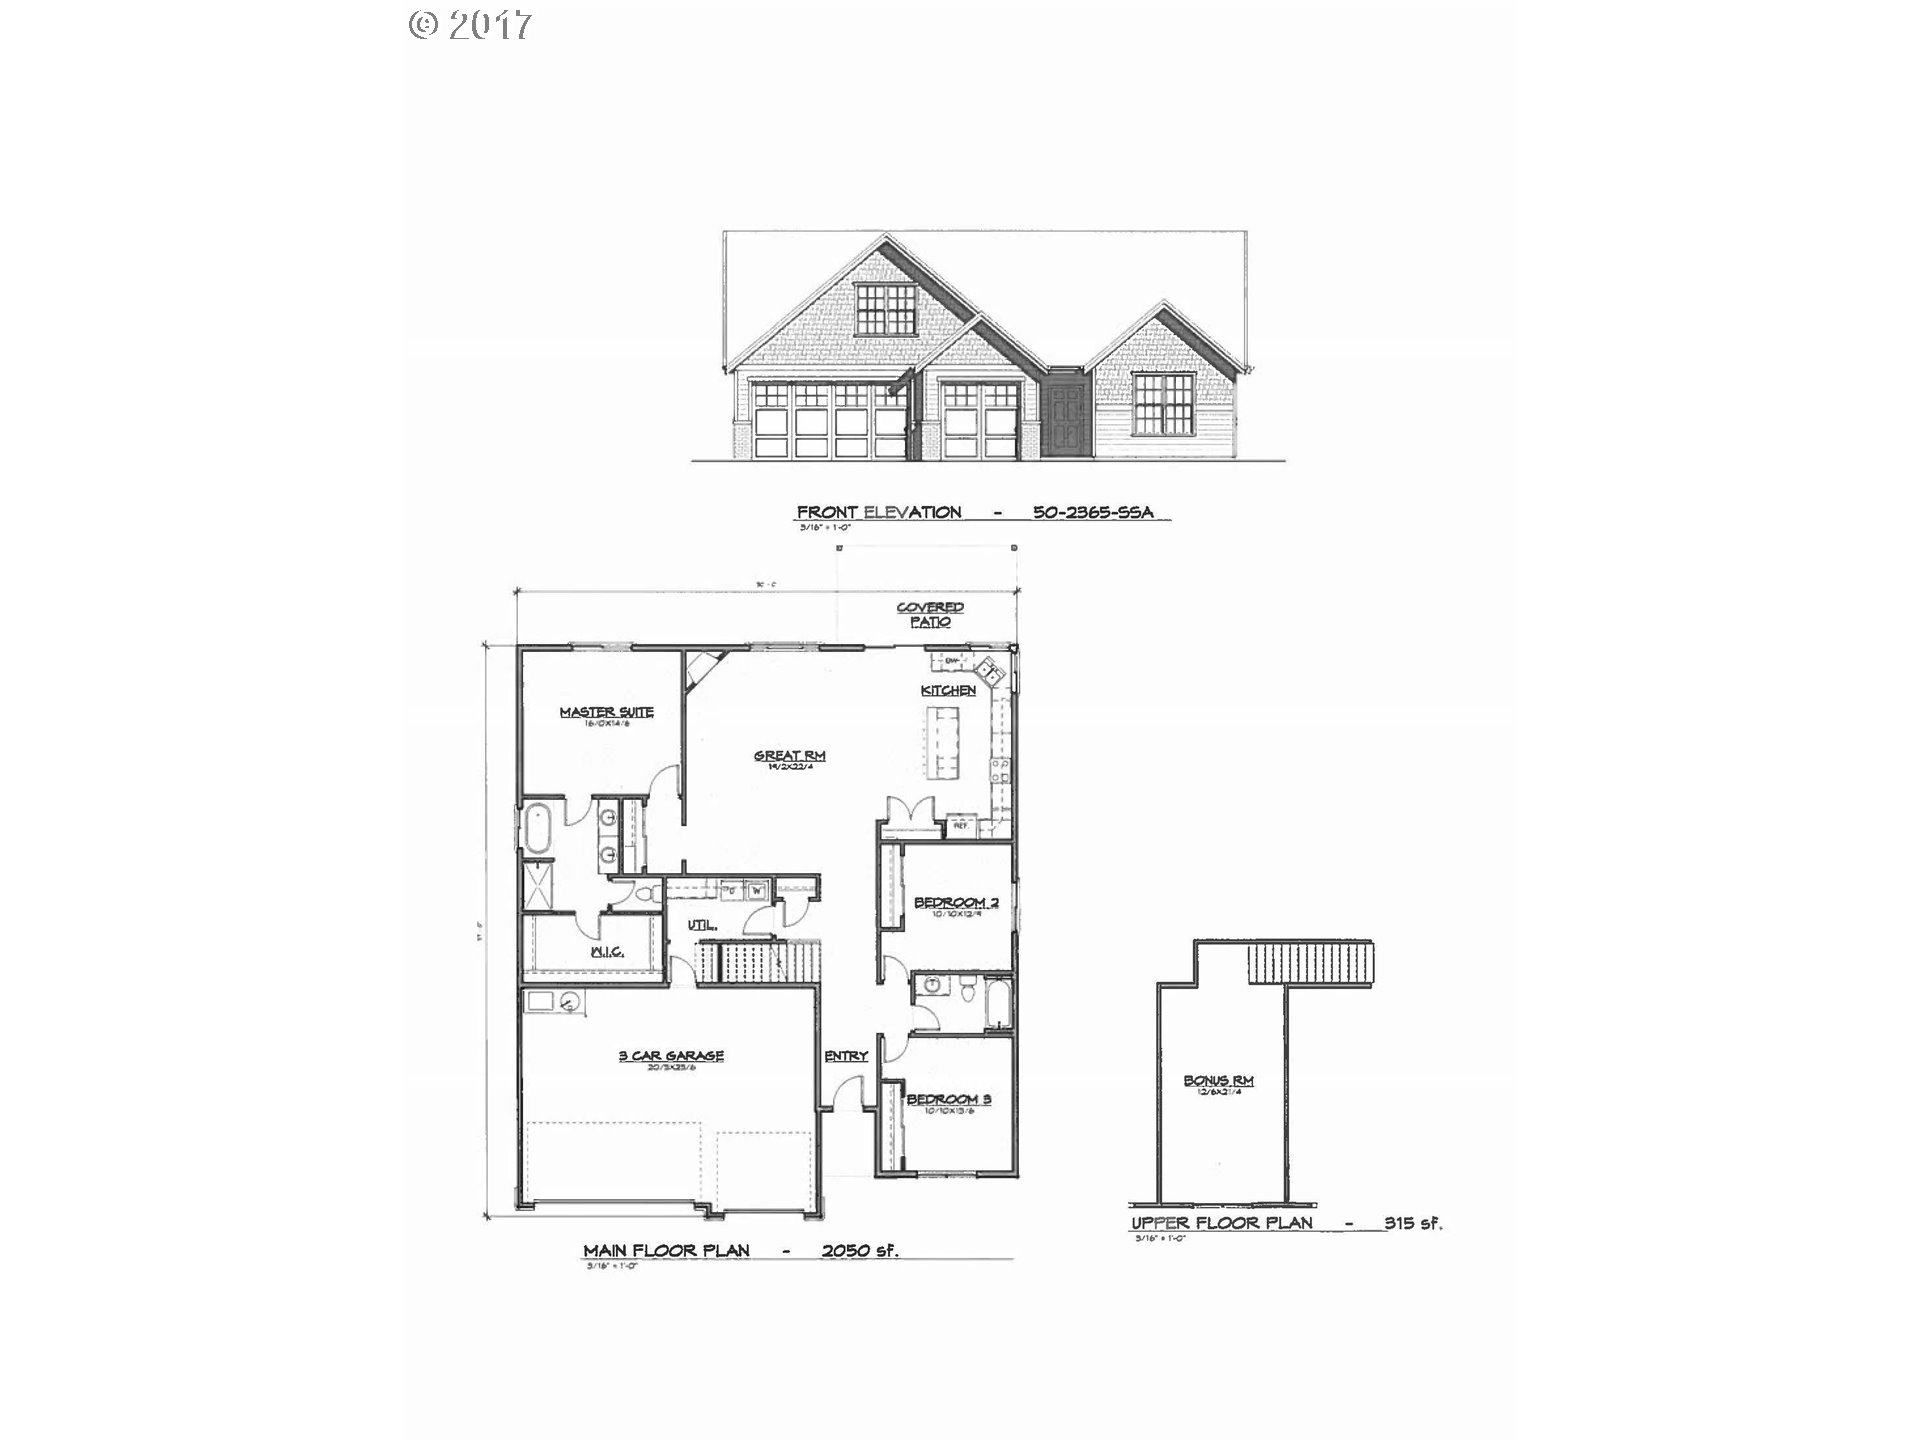 167 BLUE HERON CT, The Dalles, OR 97058